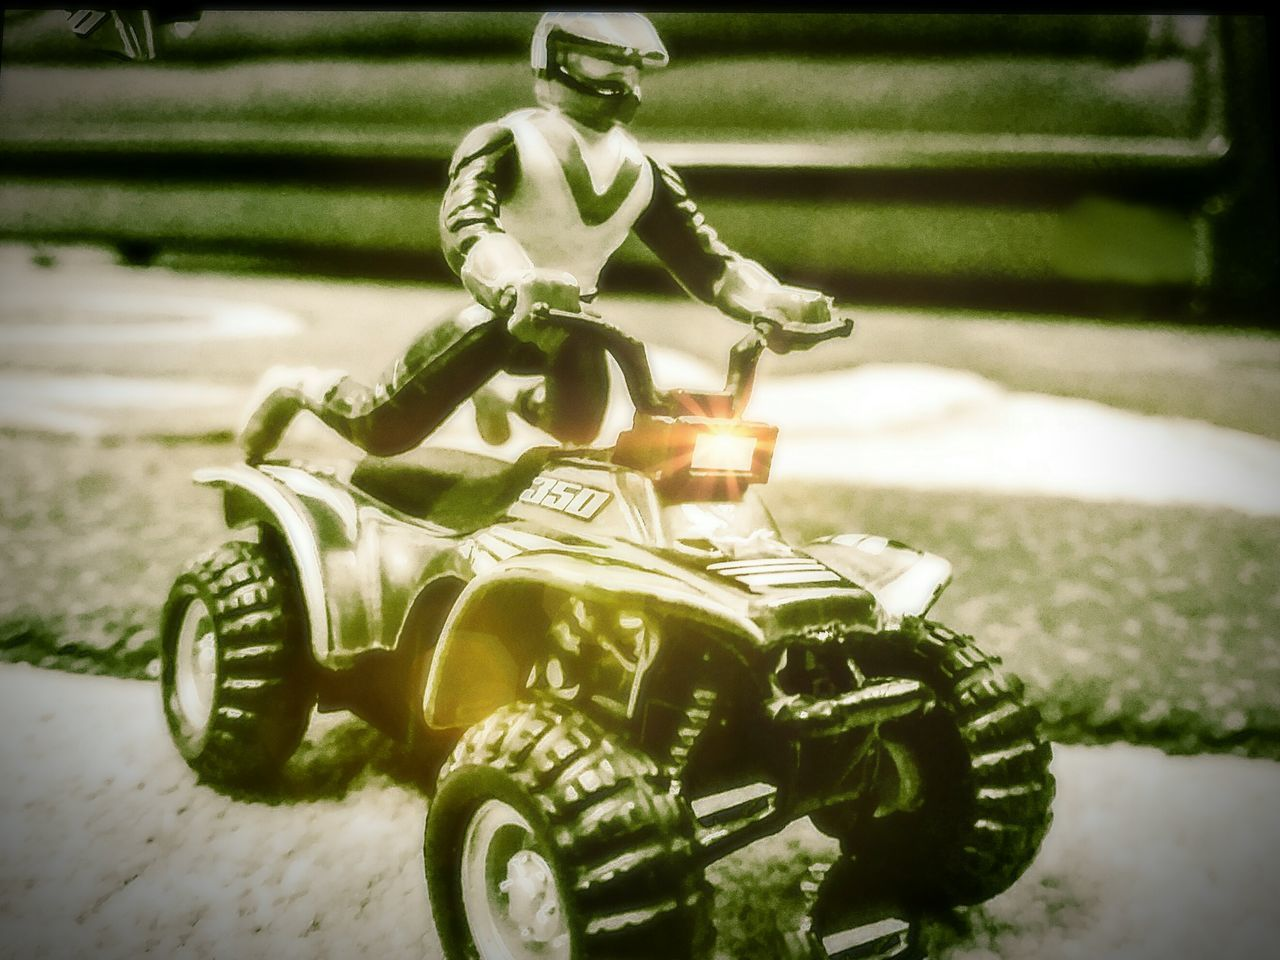 land vehicle, no people, close-up, toy car, stationary, outdoors, motorcycle, day, army